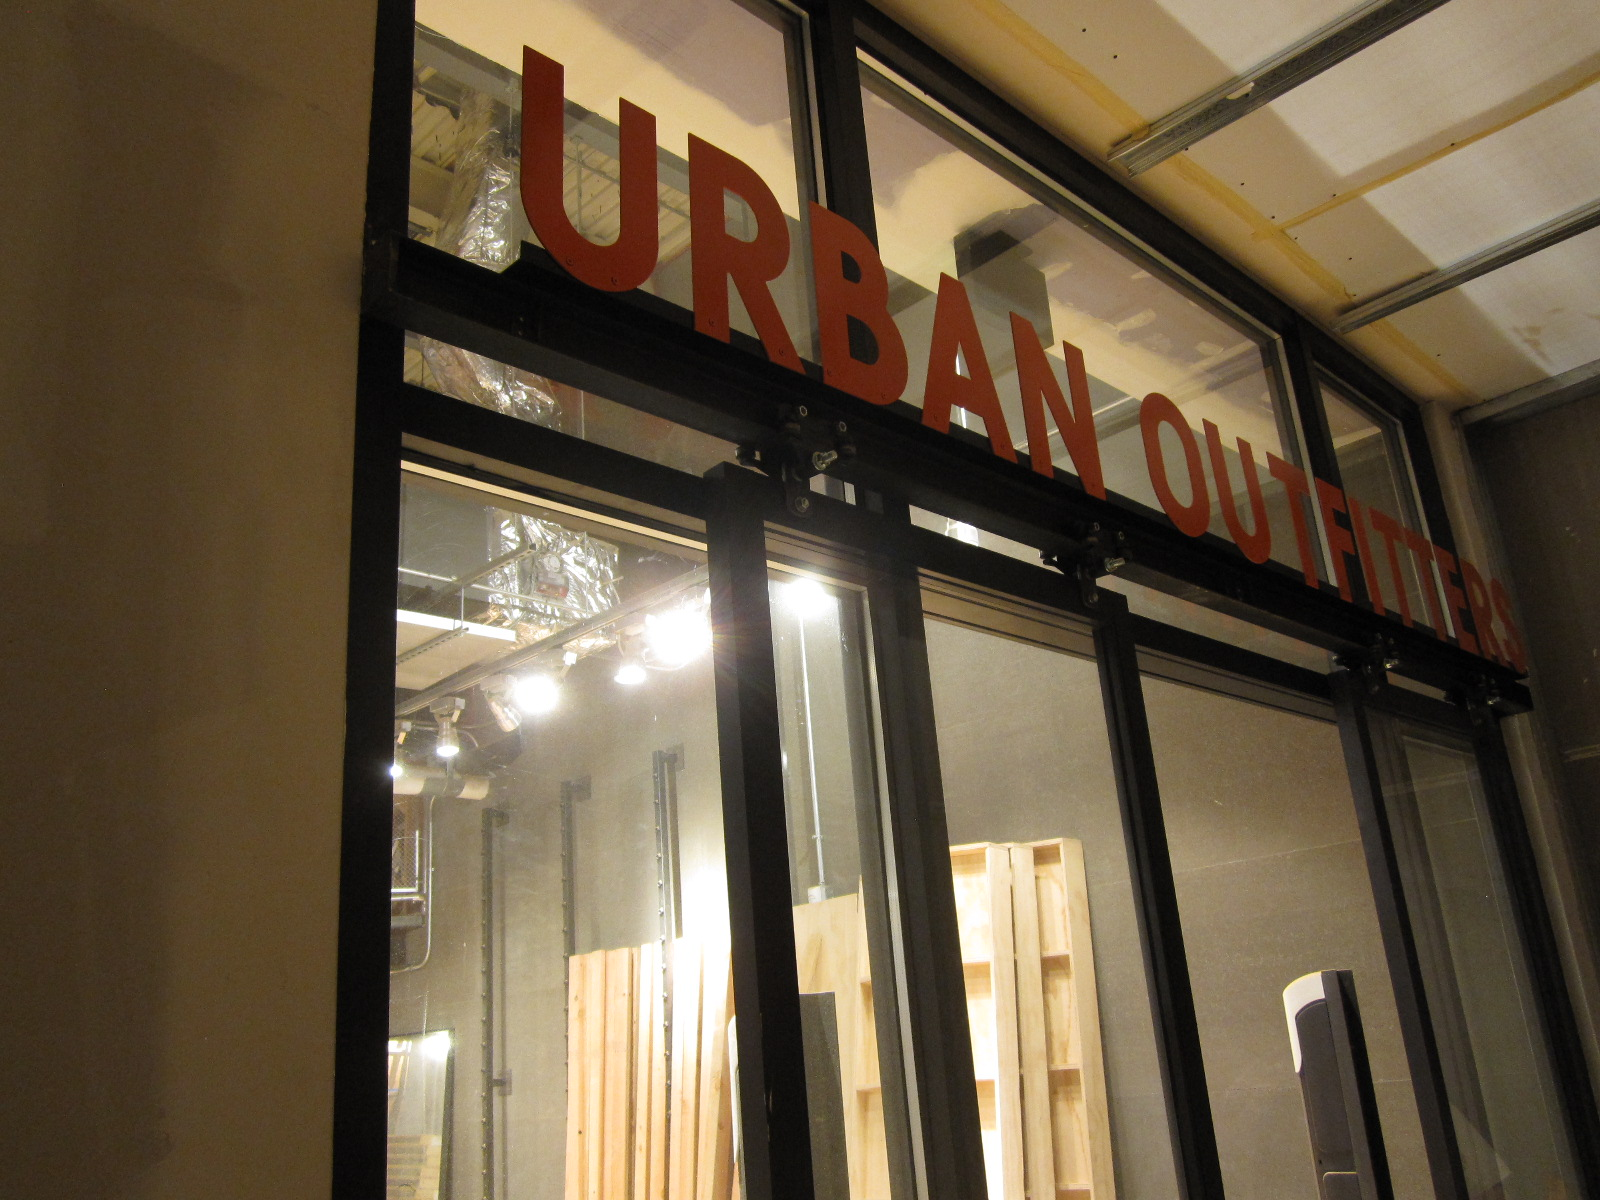 urban outfitters mission statement Don't pull an urban outfitters: integrate marketing with strategy urban outfitters decided to do its own edgy campaign that edged it into the realm of rolling.